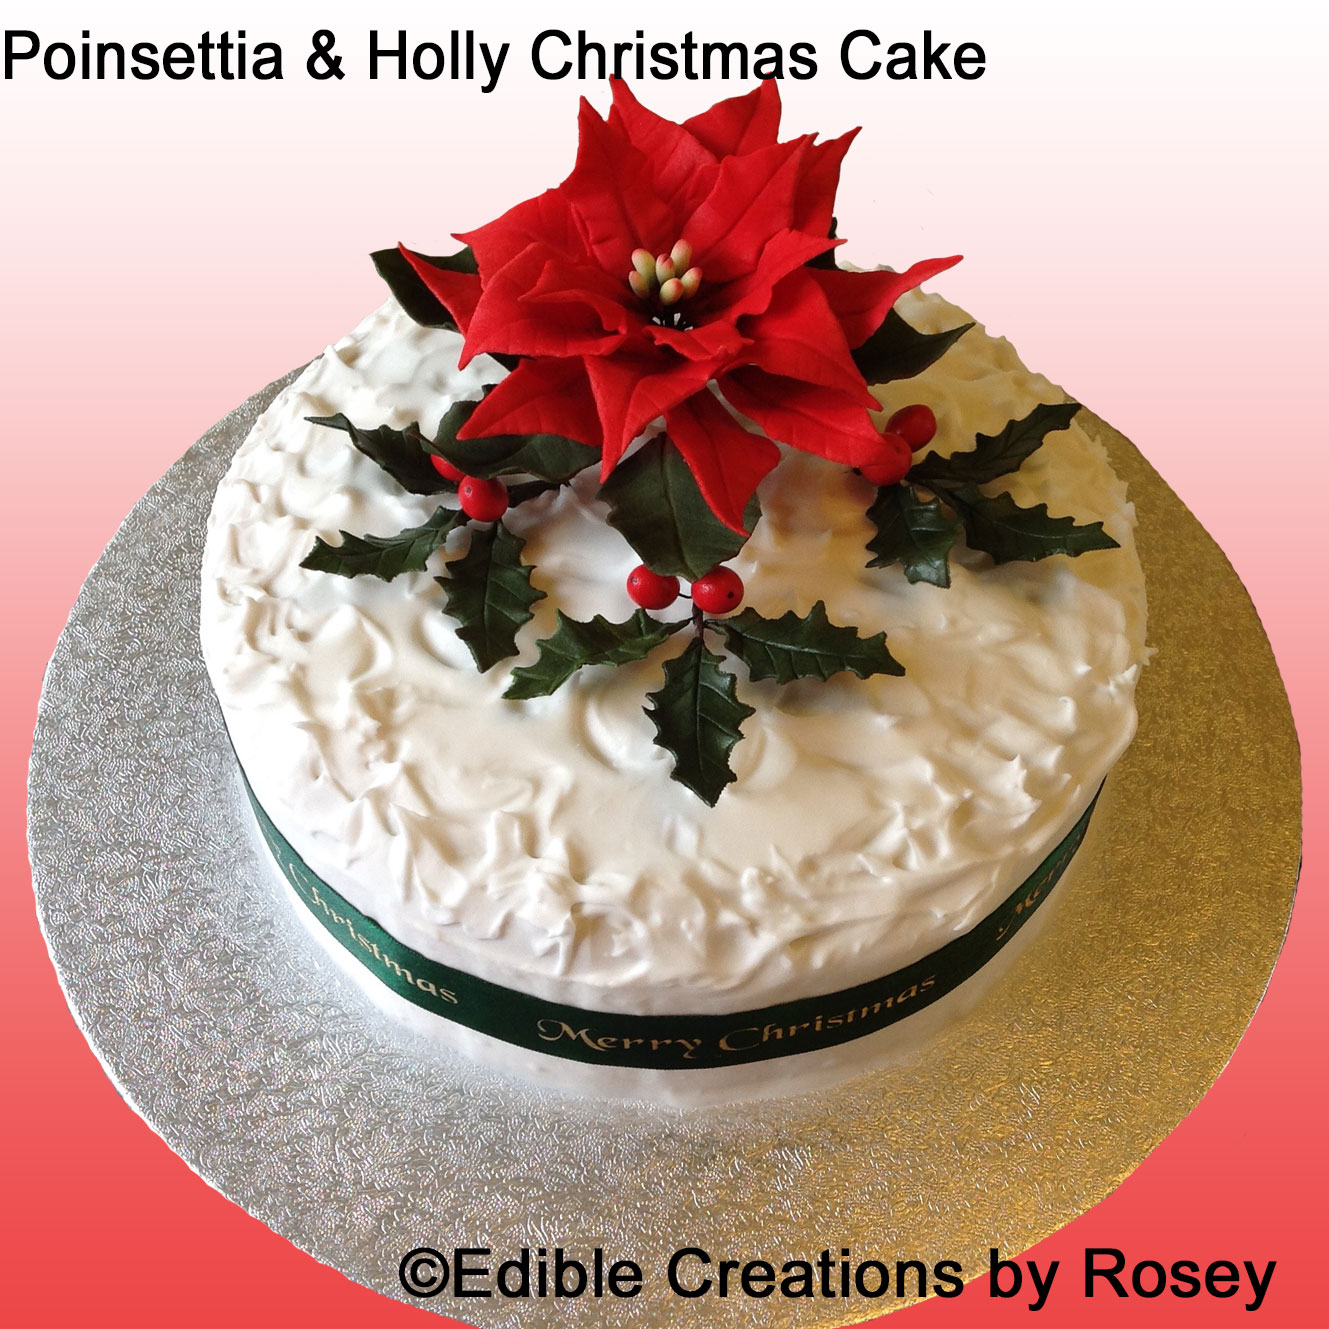 Edible Cake Decorations Holly Leaves : Christmas Cake - Poinsettia and Holly